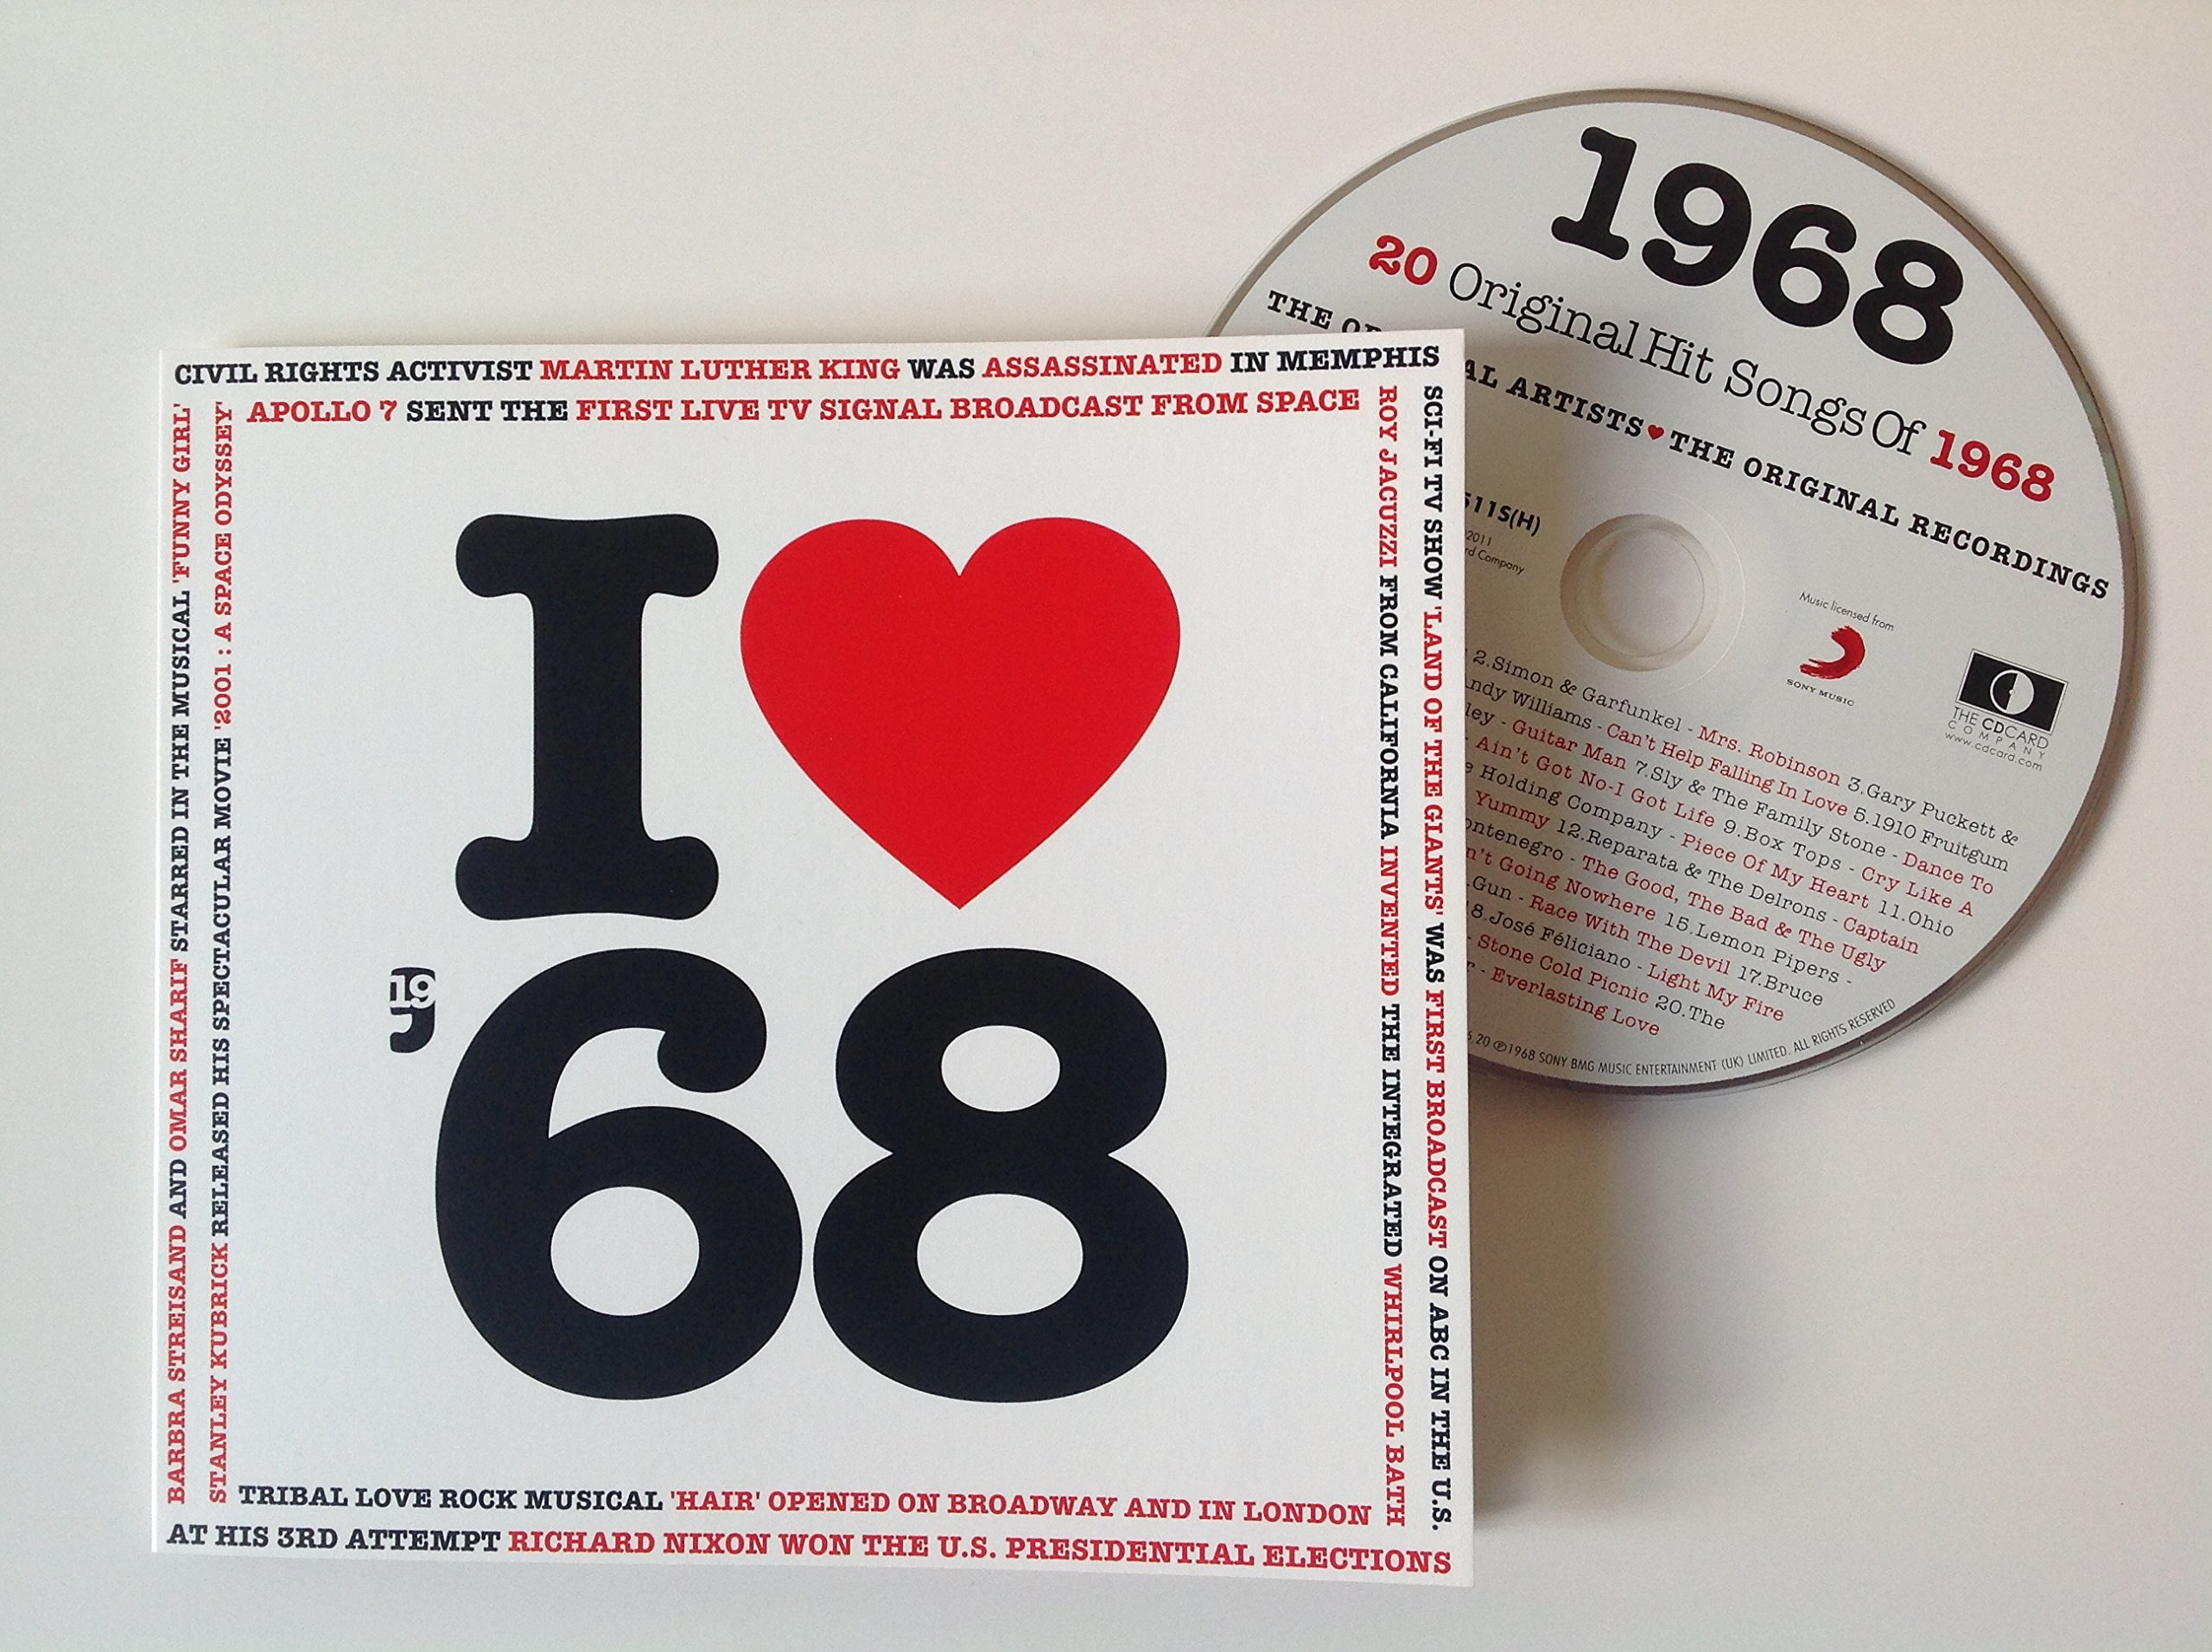 1968 BIRTHDAY or ANNIVERSARY GIFT - I Love 1968 Compilation Music Hits CD - 20 Original Songs - 1968 Year Greeting Card